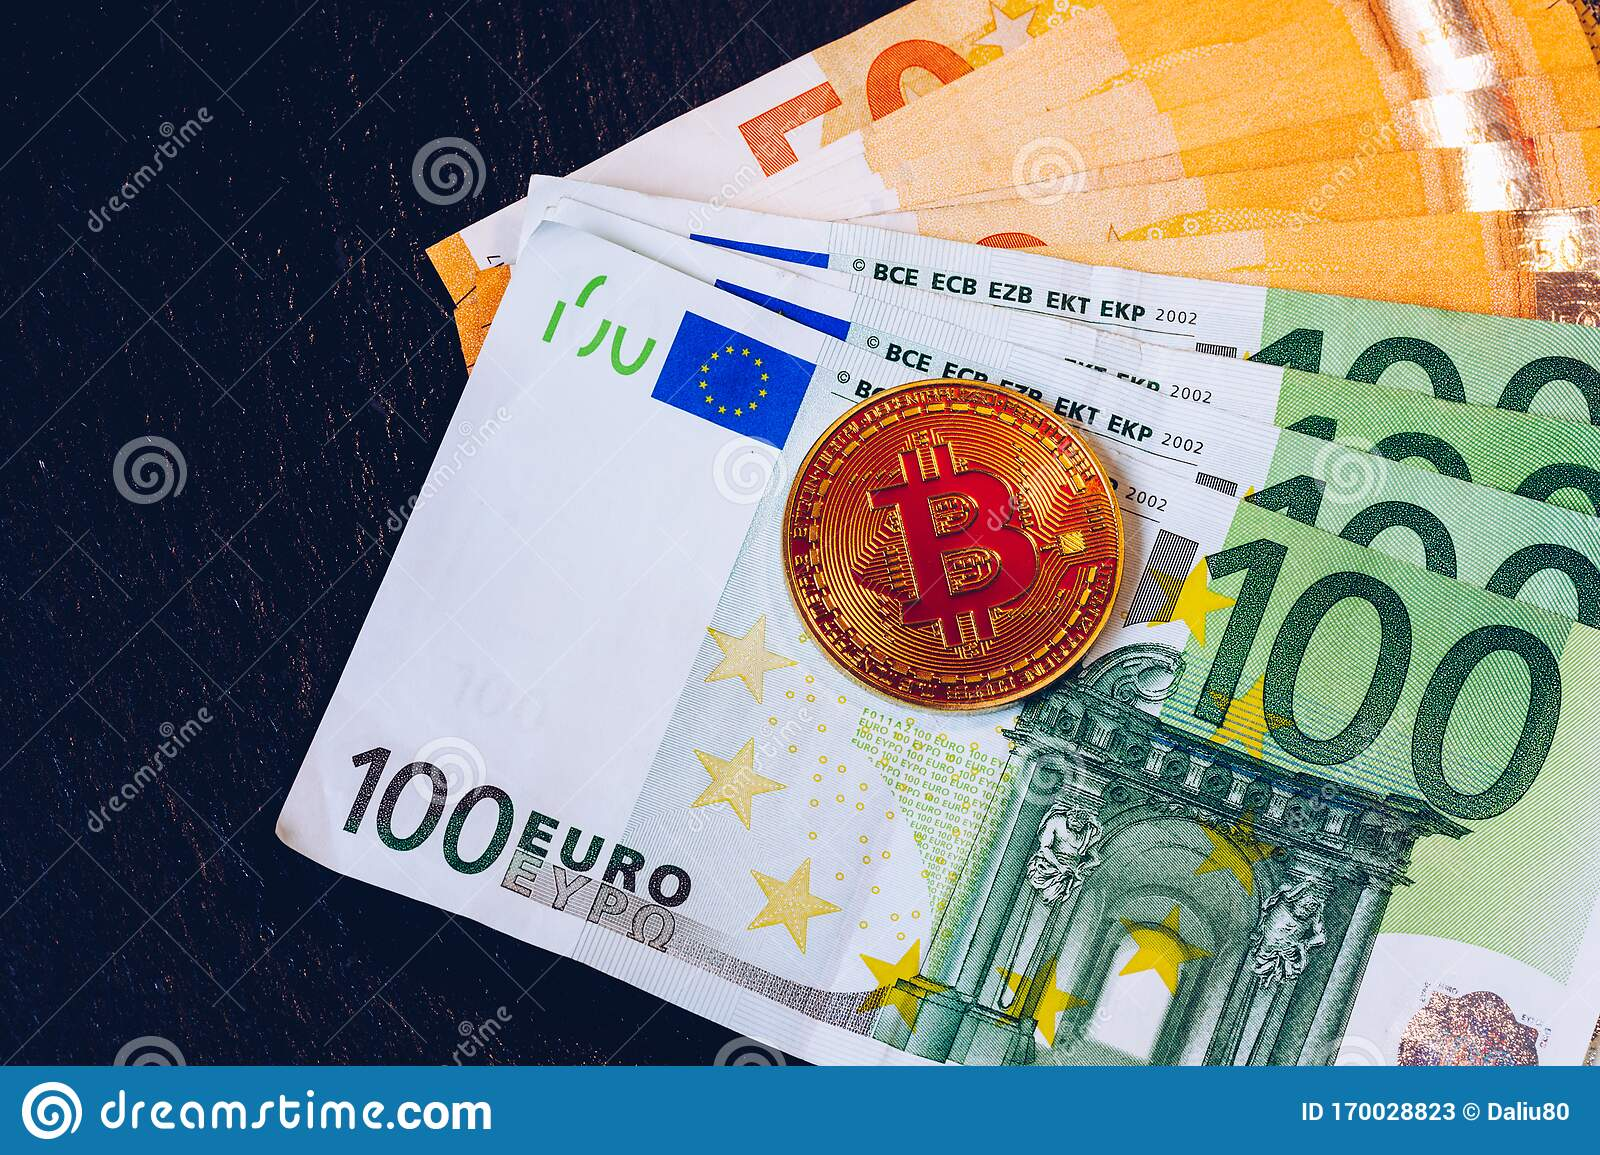 100 euros to bitcoins for free paul storkie sports betting online